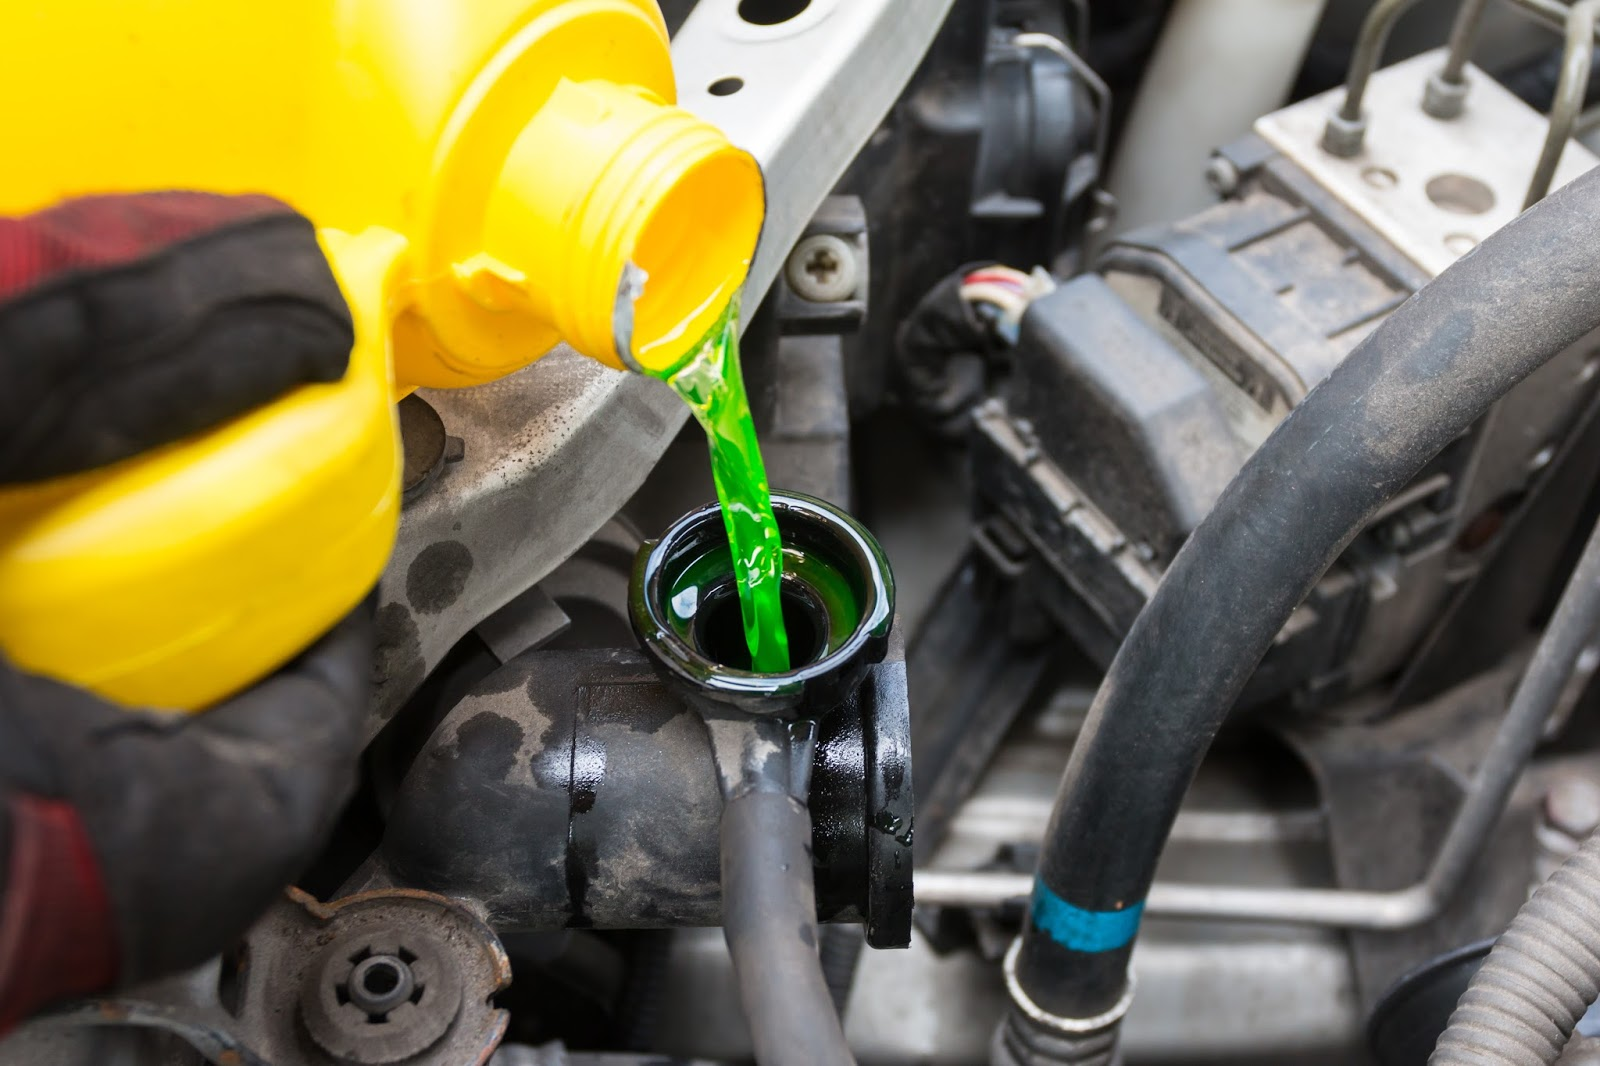 DNG NAPA Auto Parts: When Should Automotive Engine Coolant Be Replaced?